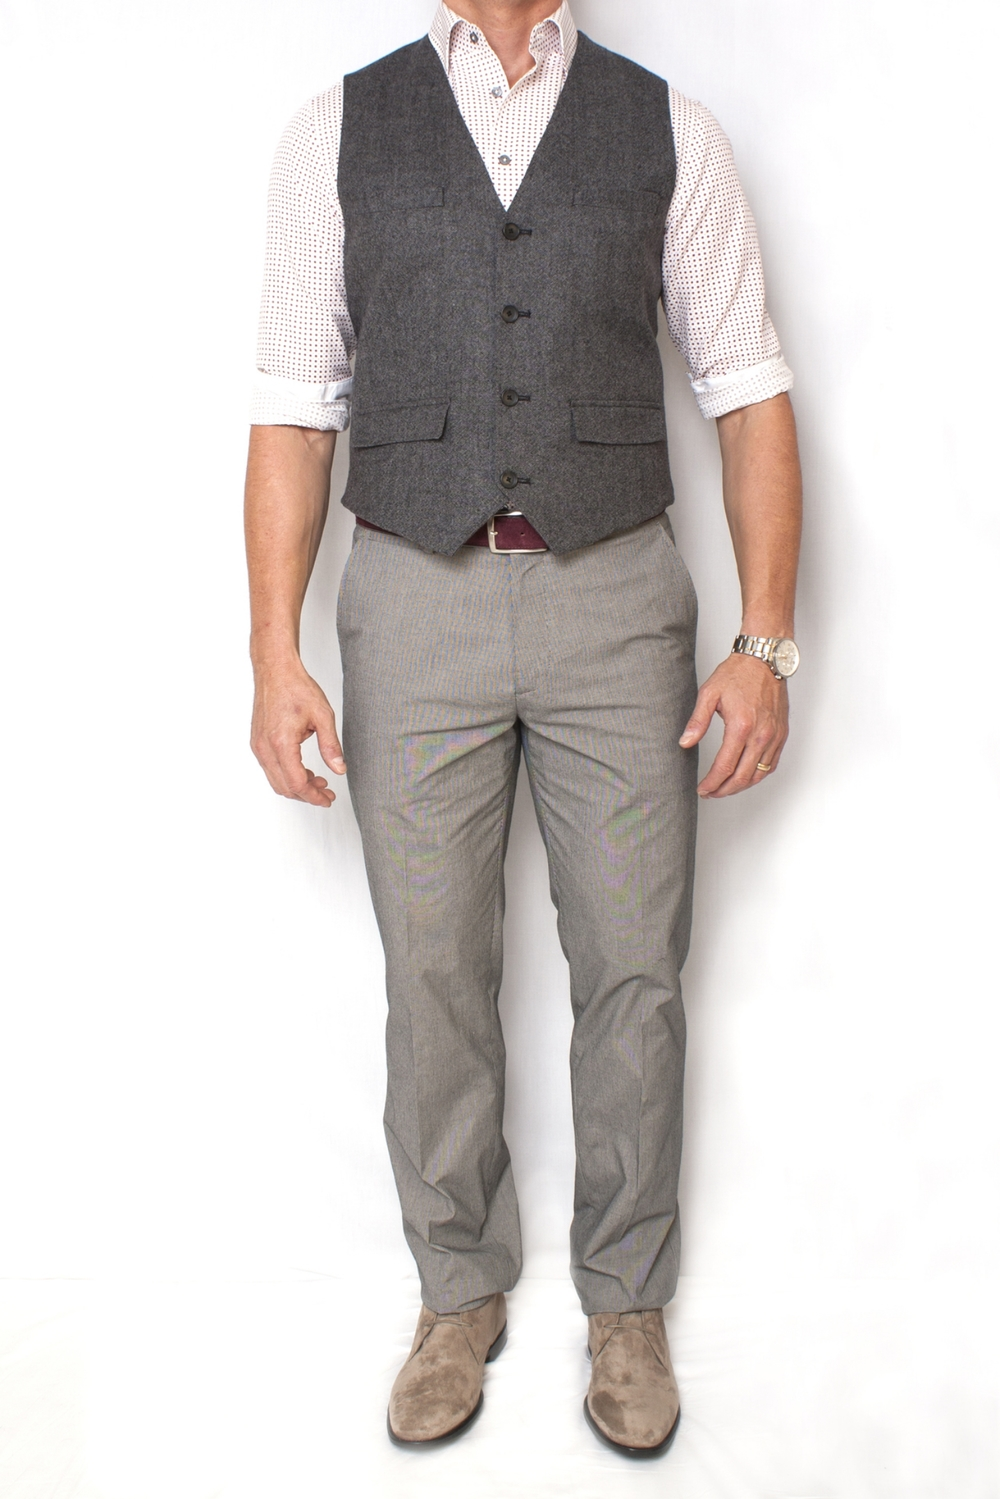 Executive CasuaL - Sometimes referred to as CEO casual. The most formal of the bunch. Executive casual spans from a suit without the tie to slacks with a dress shirt and a blazer, and occasionally chinos or dress denim can be appropriate.